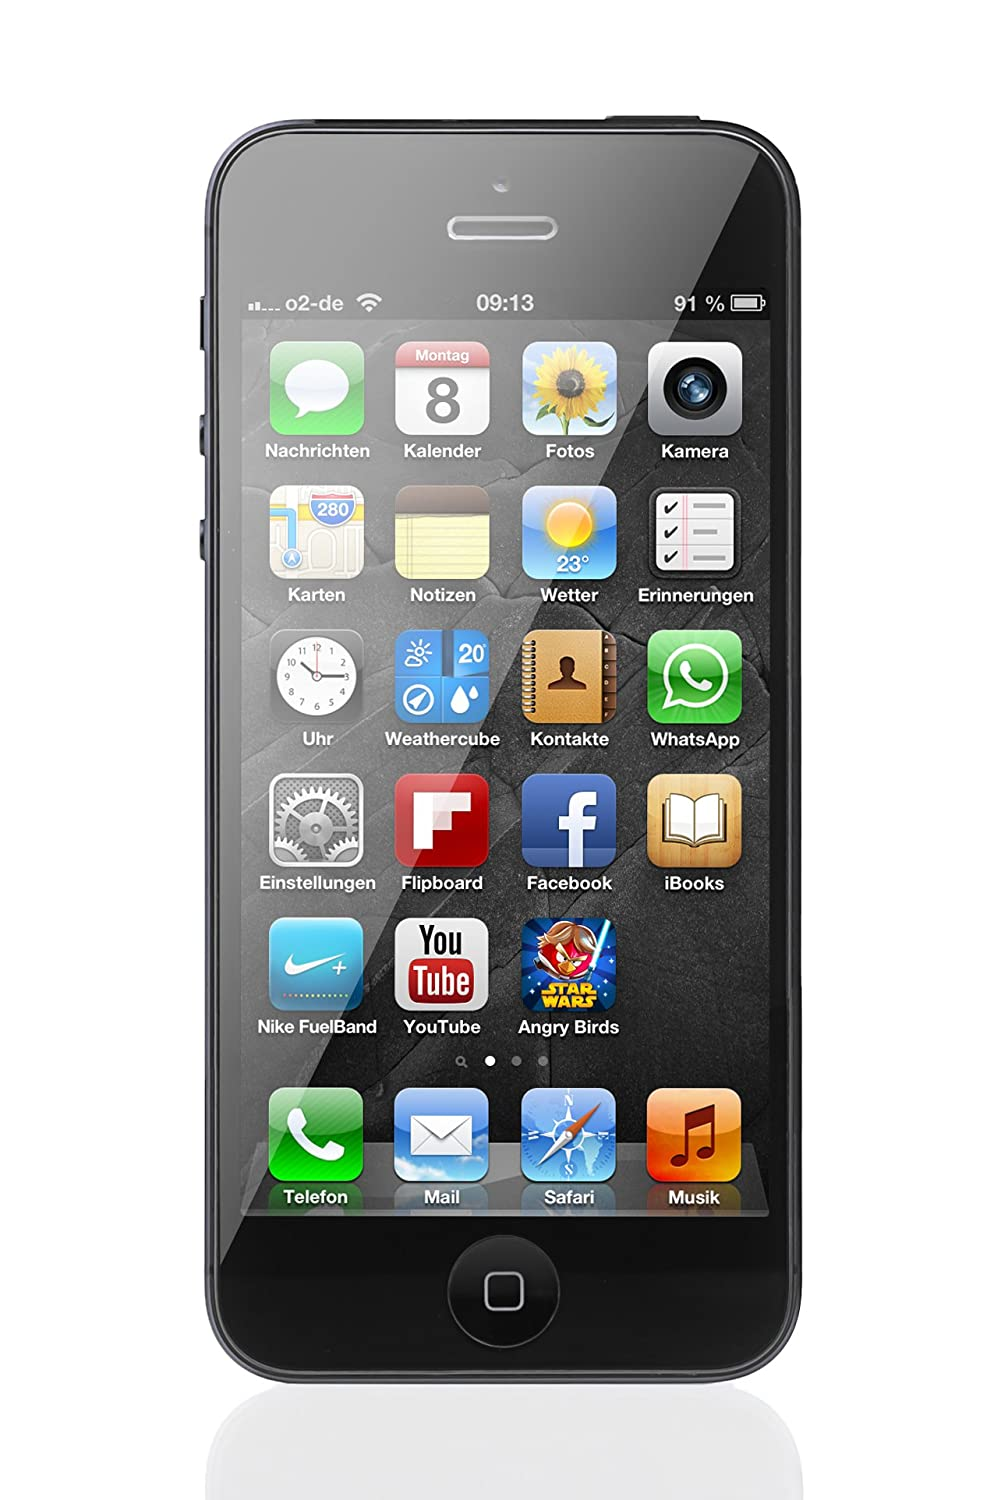 Leasing Apple iPhone 5, Black 16GB (Unlocked)